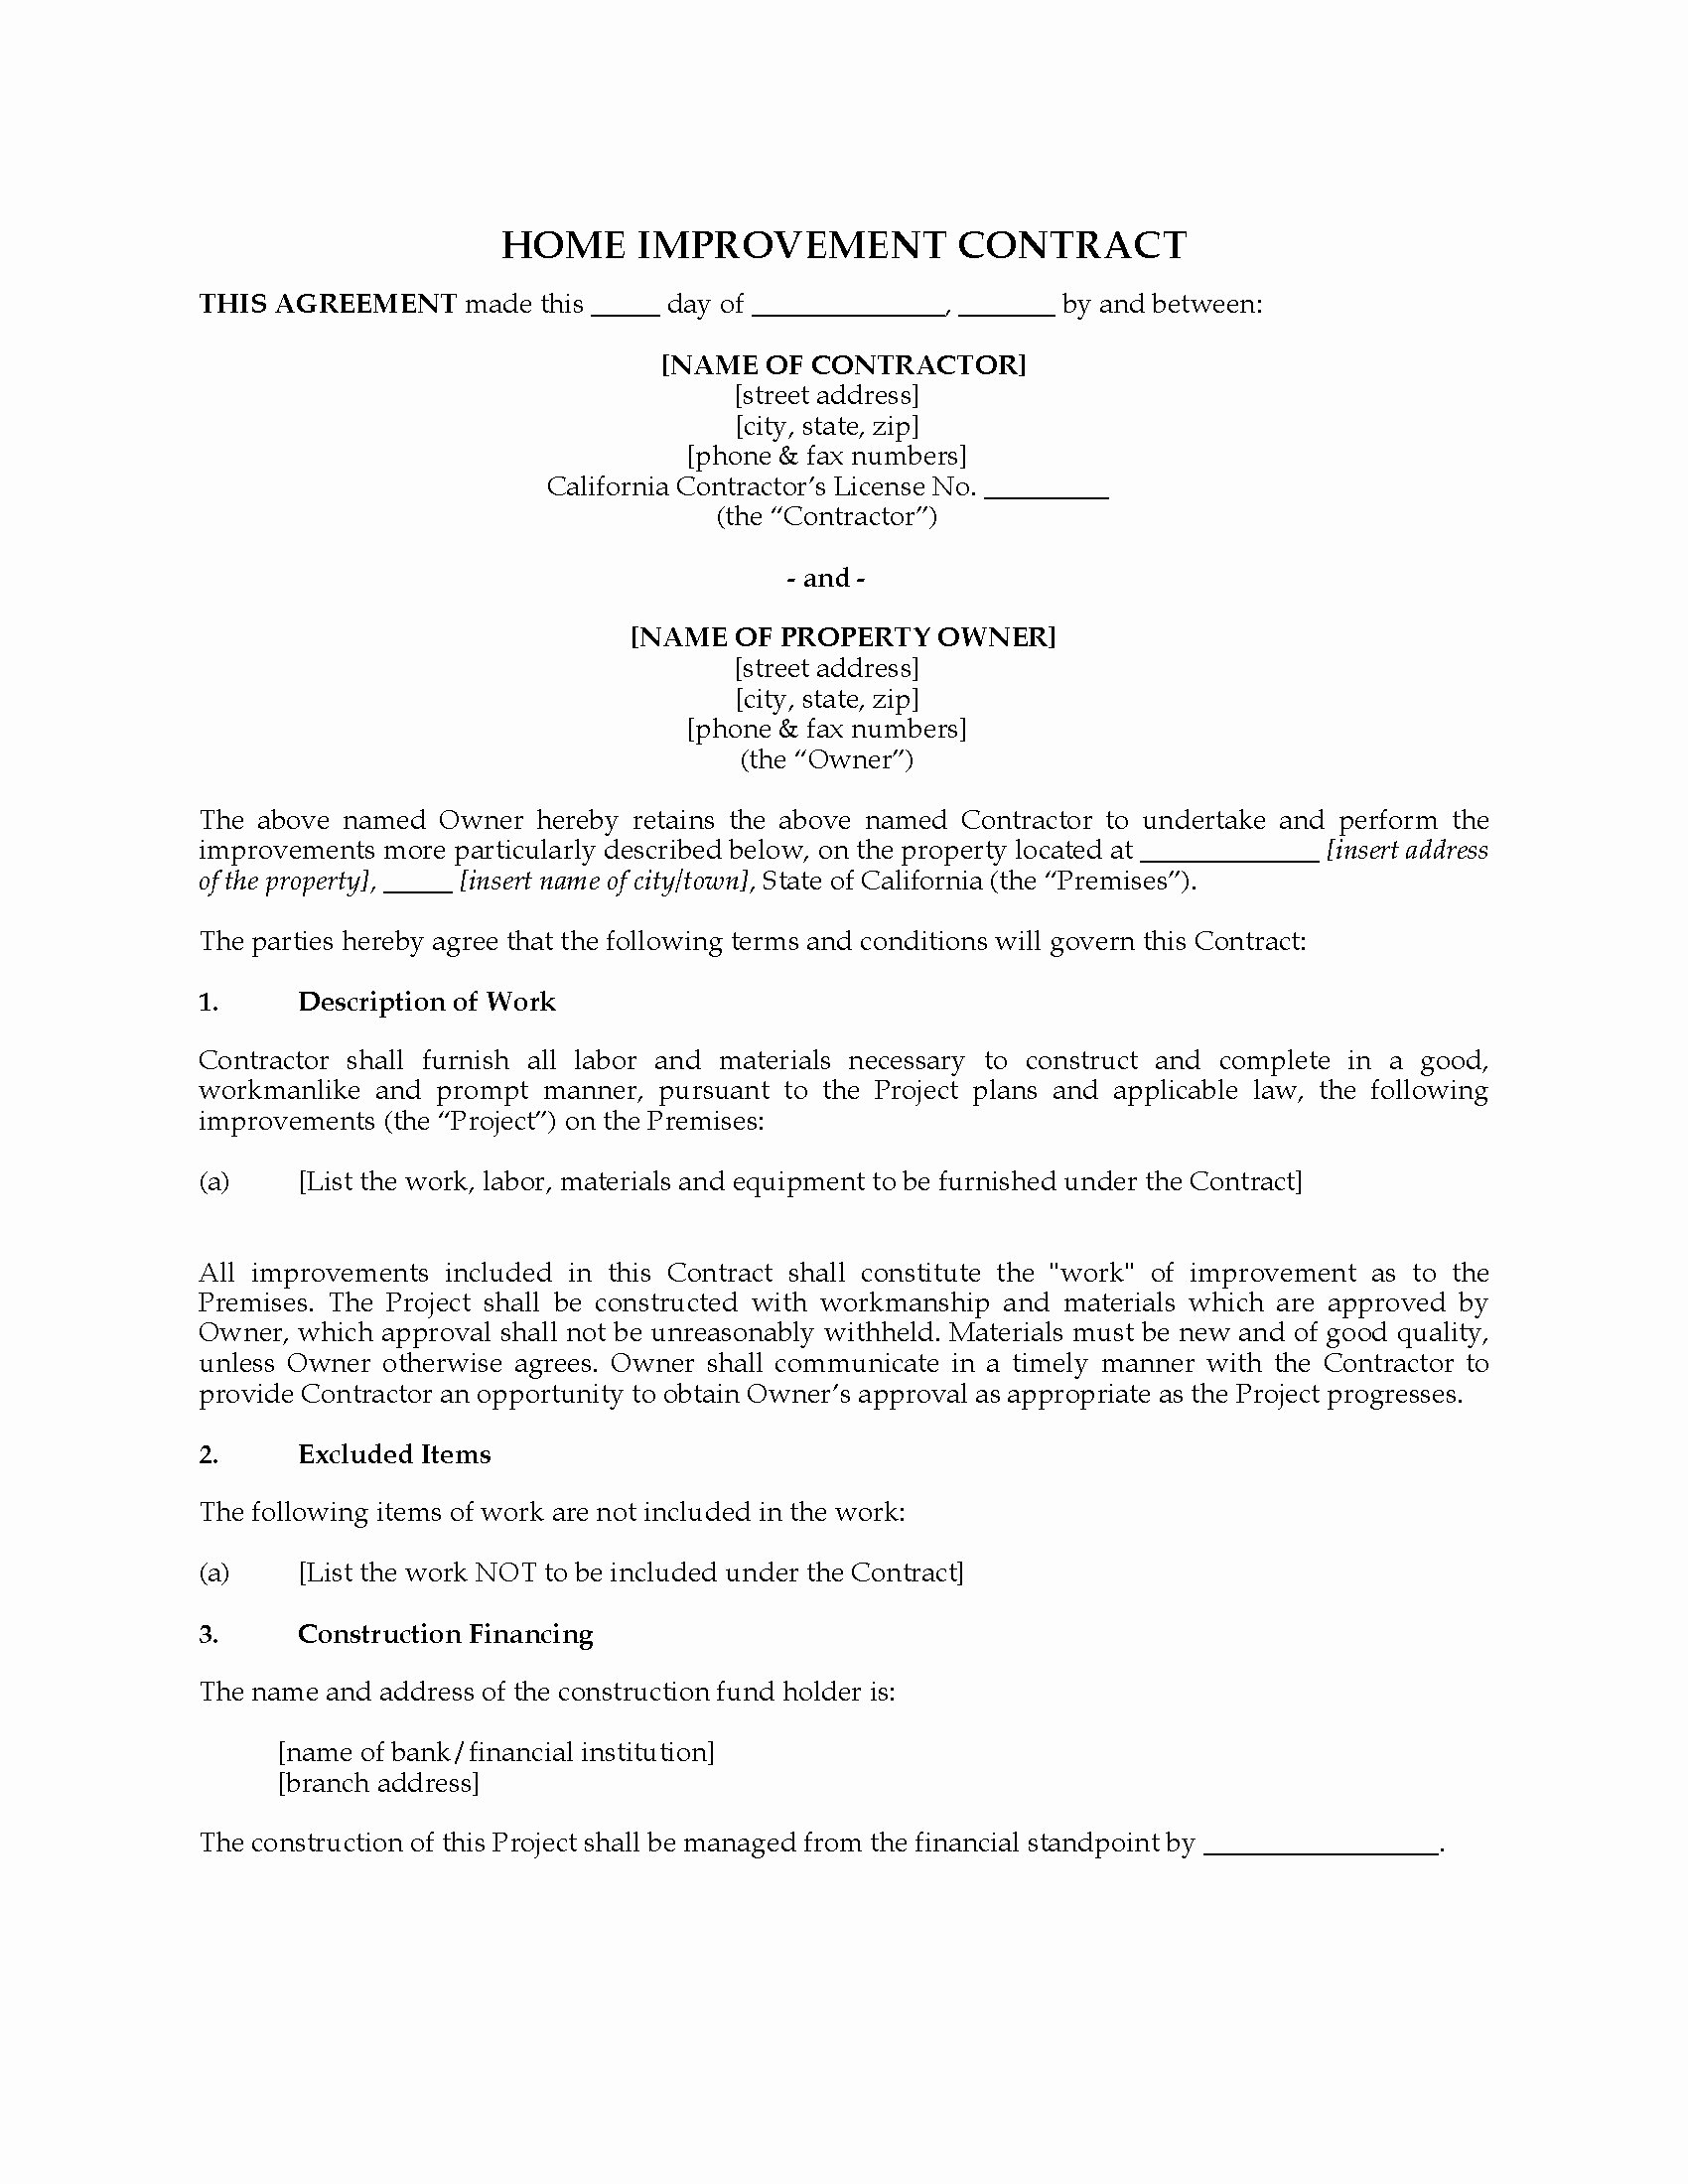 Home Remodeling Contract Template Fresh California Home Improvement Contract